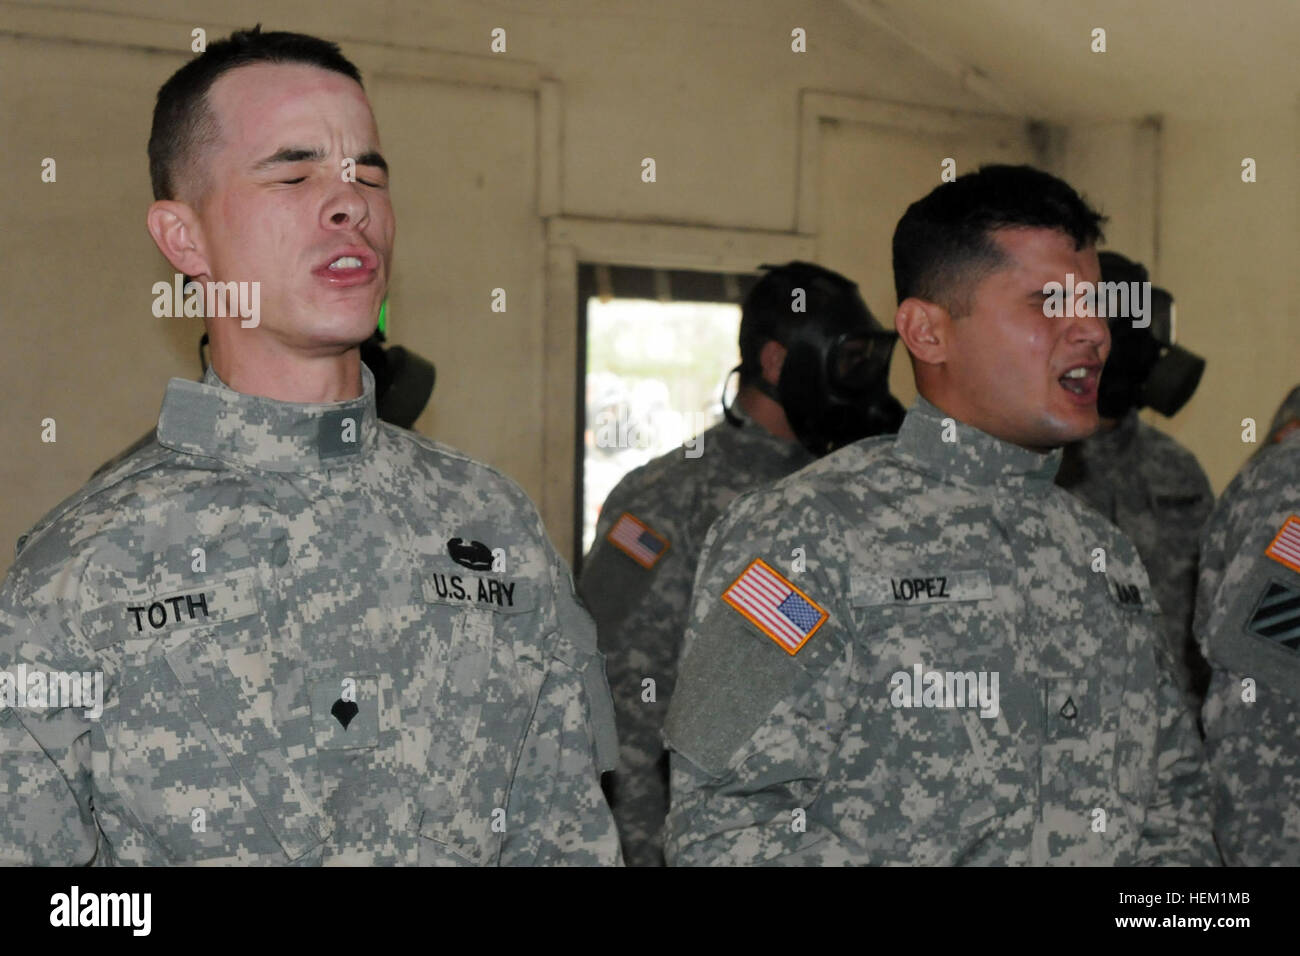 Spc. Andrew E. Toth and Pfc. Guiovanny Lopez, cavalry scouts with B Troop, 6th Squadron, 8th Cavalry Regiment, 4th Stock Photo